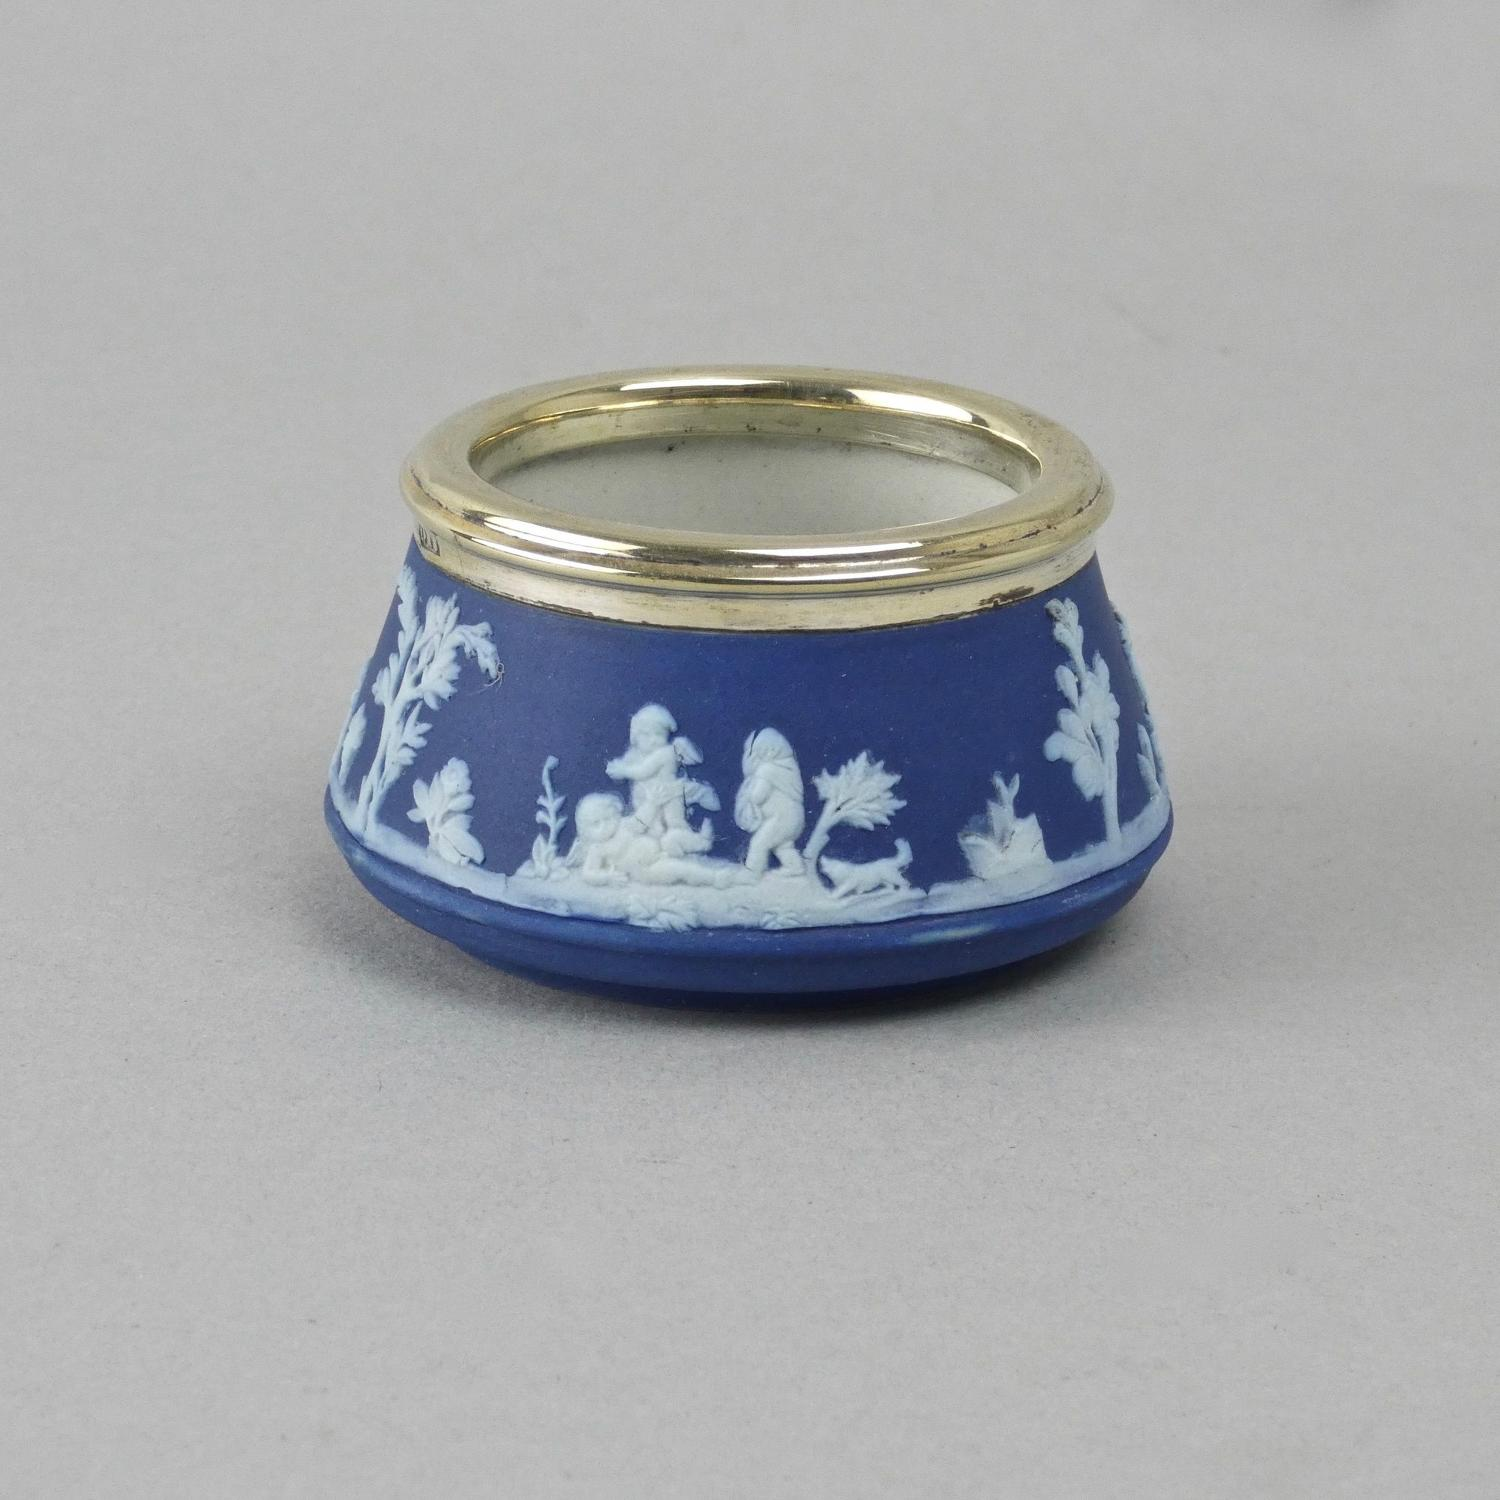 Small Wedgwood salt pot